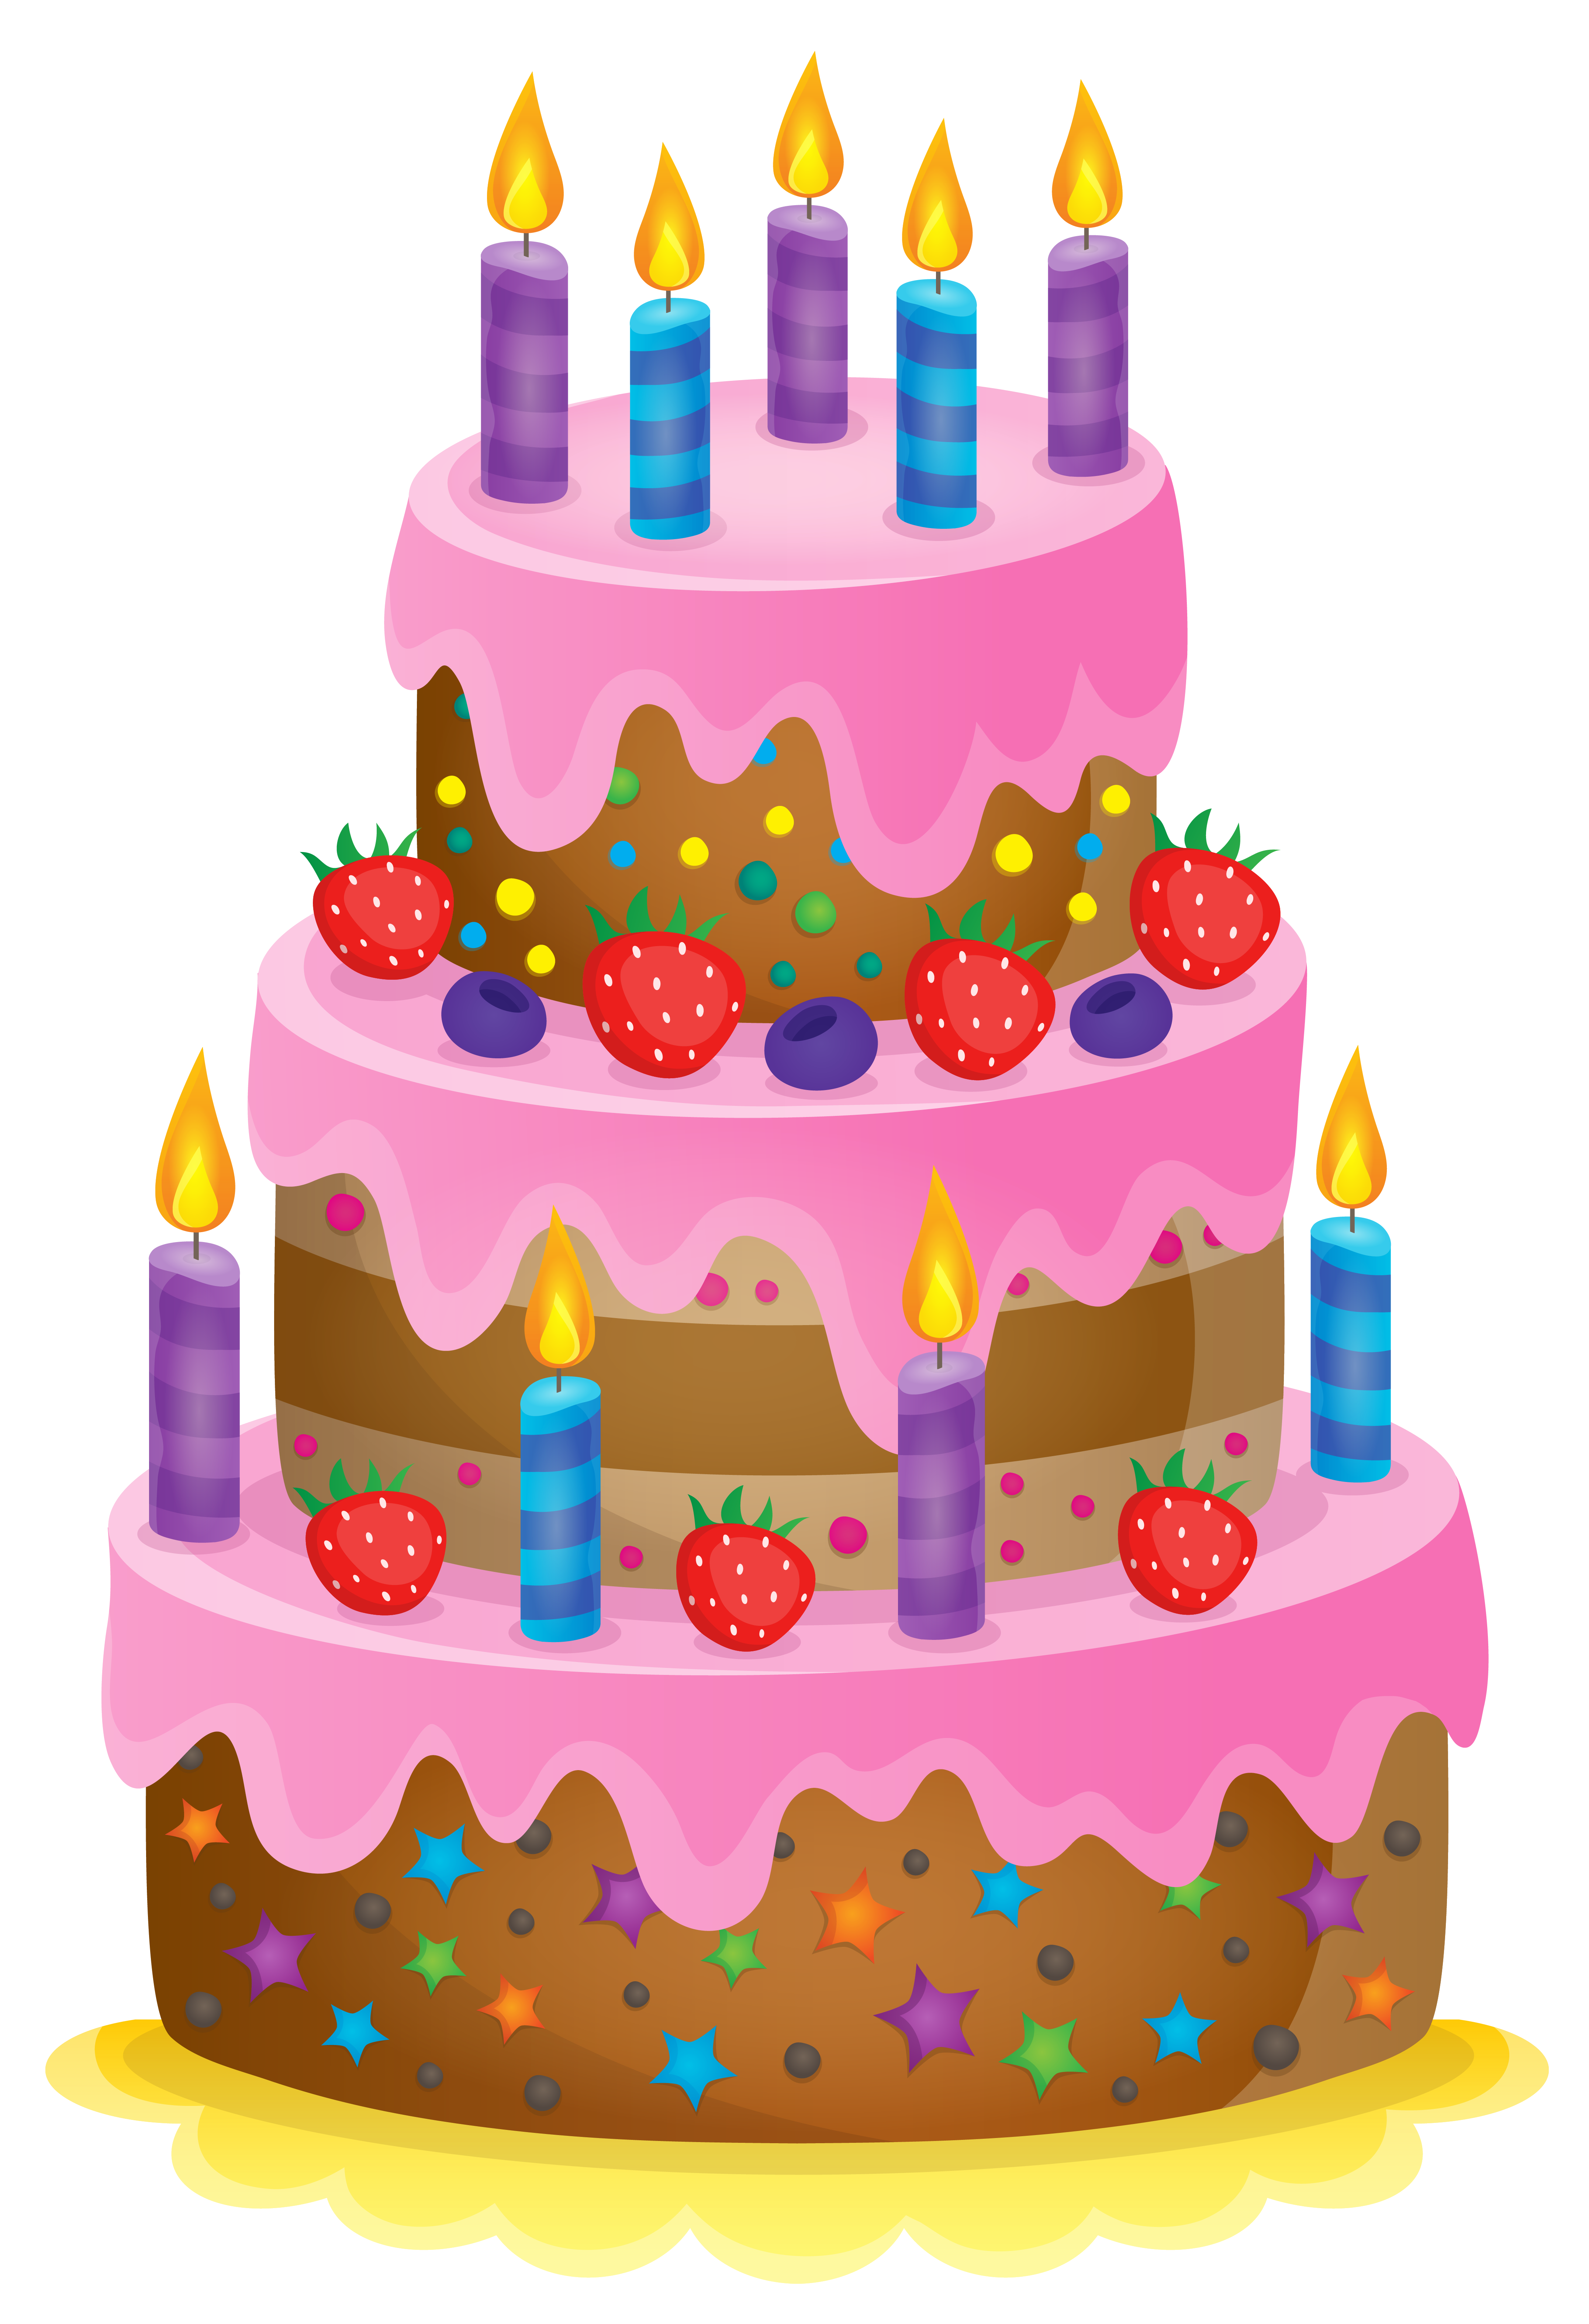 4307x6298 Cute Cake PNG Clipart Imageu200b Gallery Yopriceville